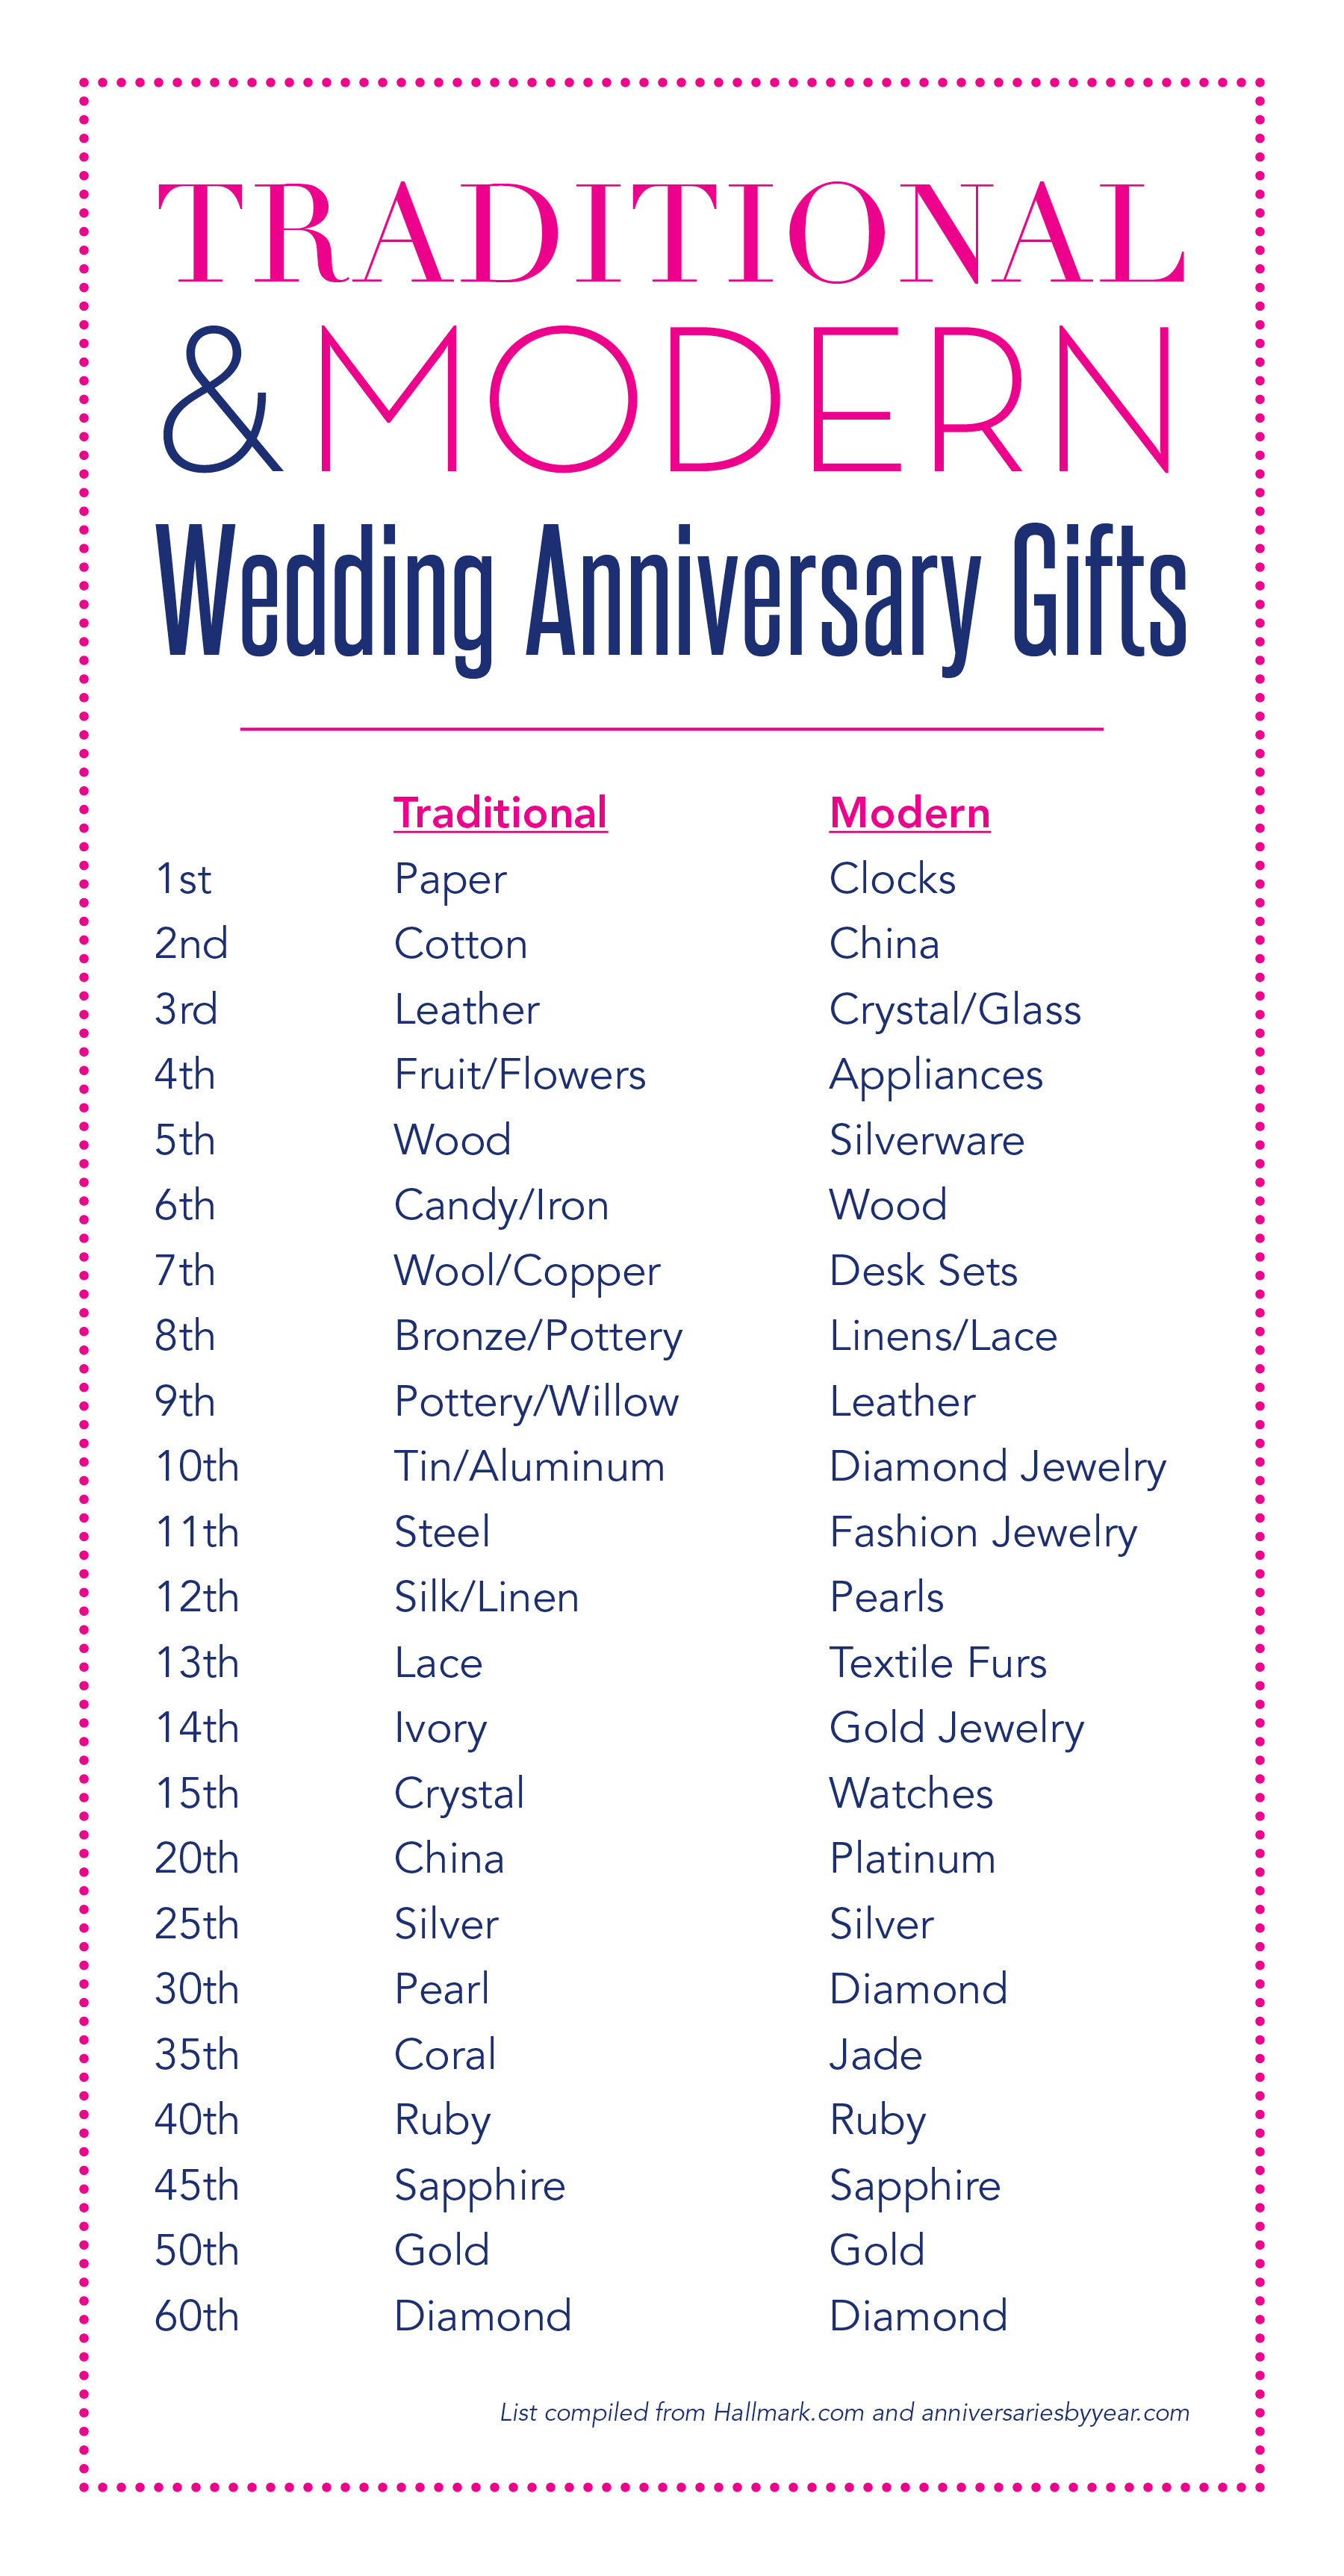 1 Yr Wedding Anniversary Gifts For Him : wedding anniversary gifts (traditional & modern)